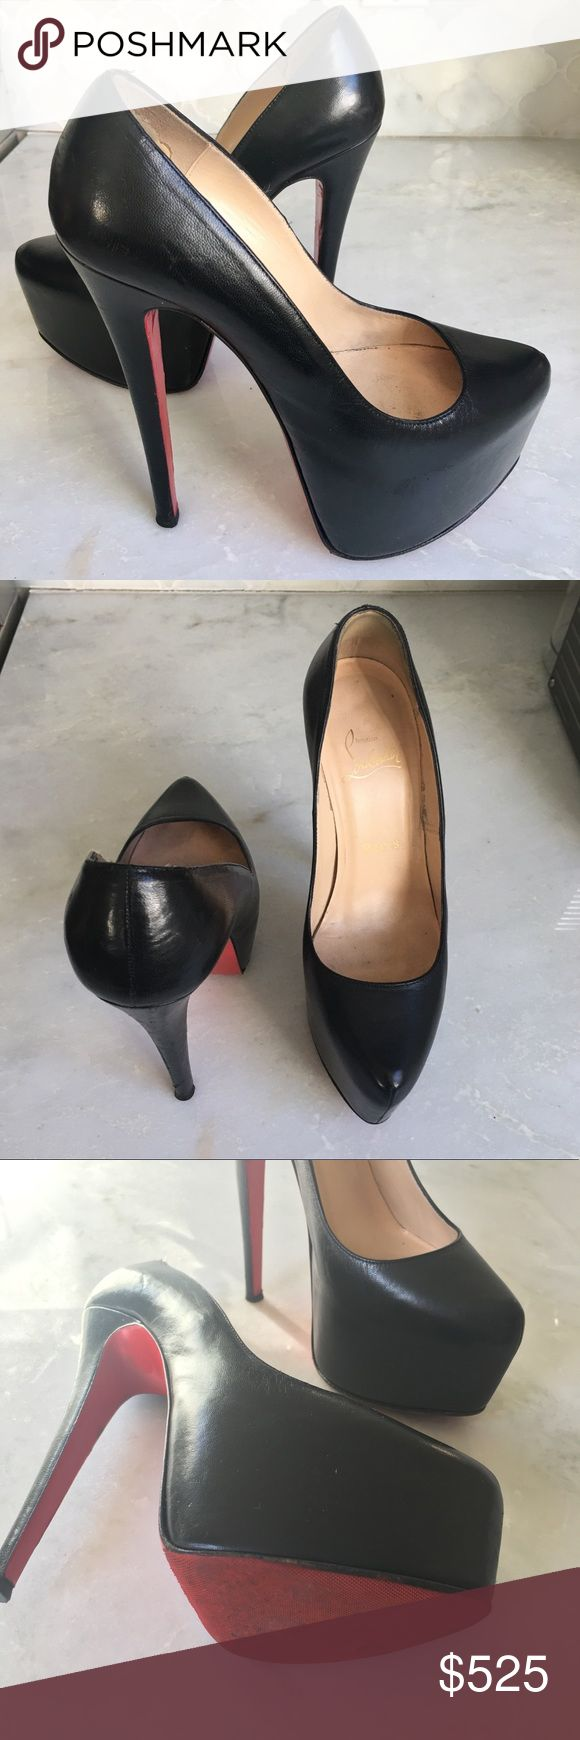 Christian Louboutin Daffodile Black Leather Christian Louboutin Daffodile Black Leather (with ballet sole protector). Great condition! Christian Louboutin Shoes Heels